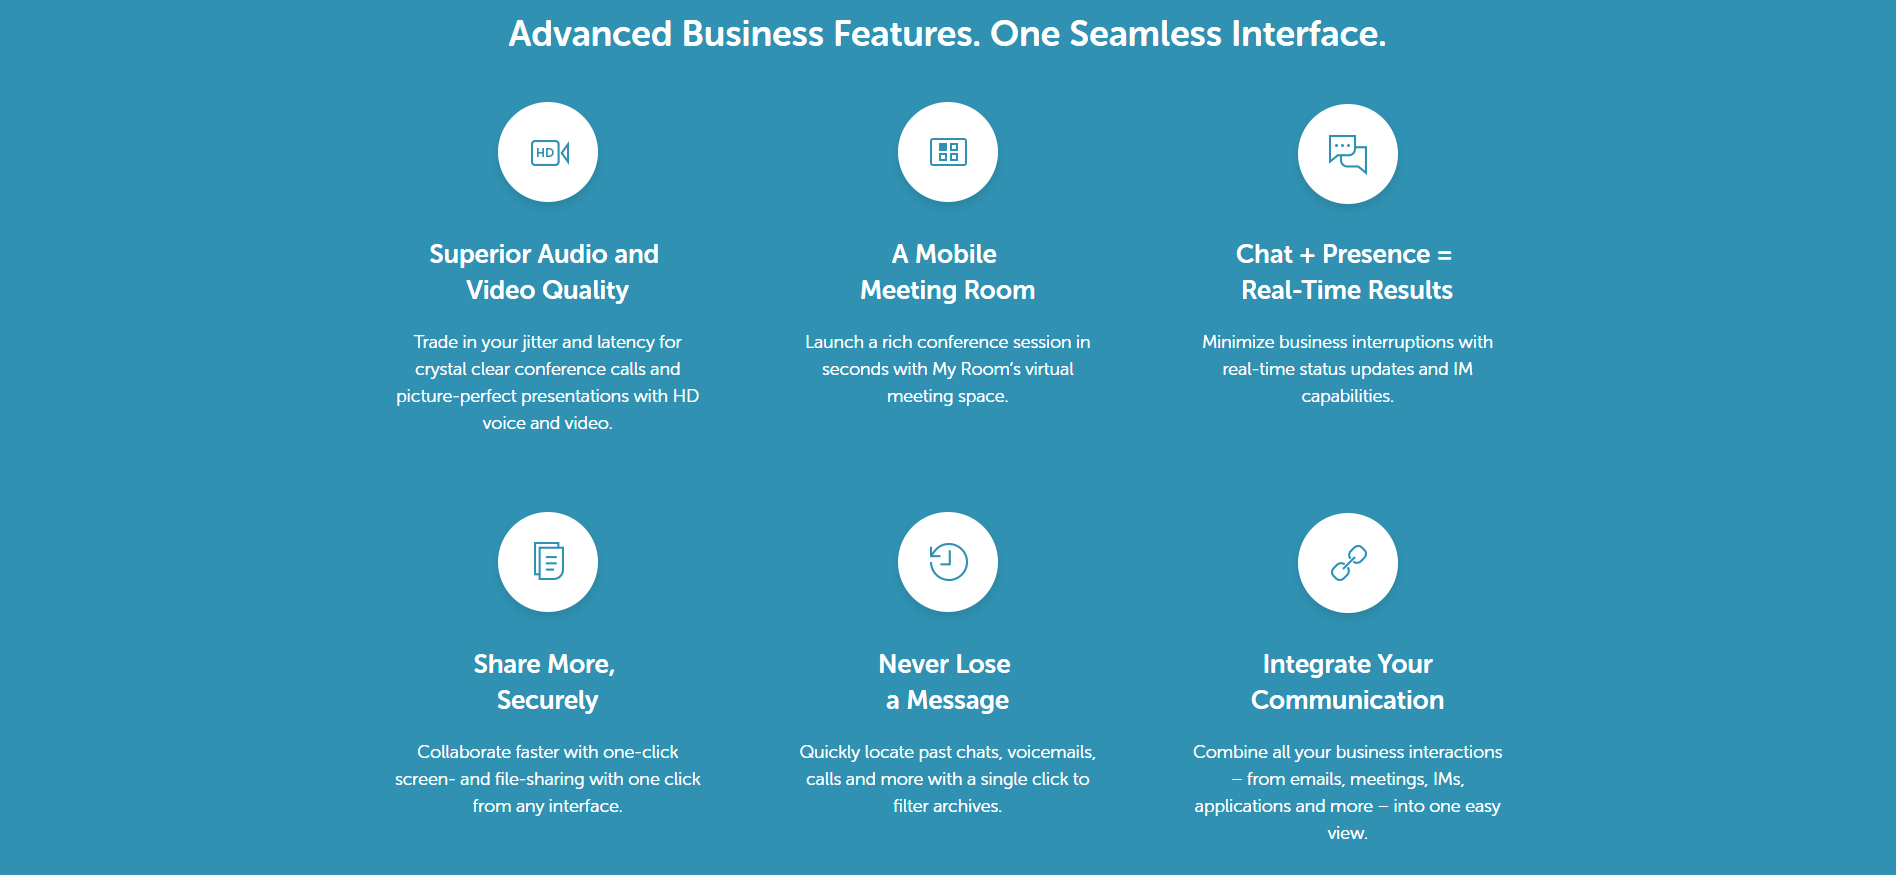 broadsoft-free-trial-advanced-features.png